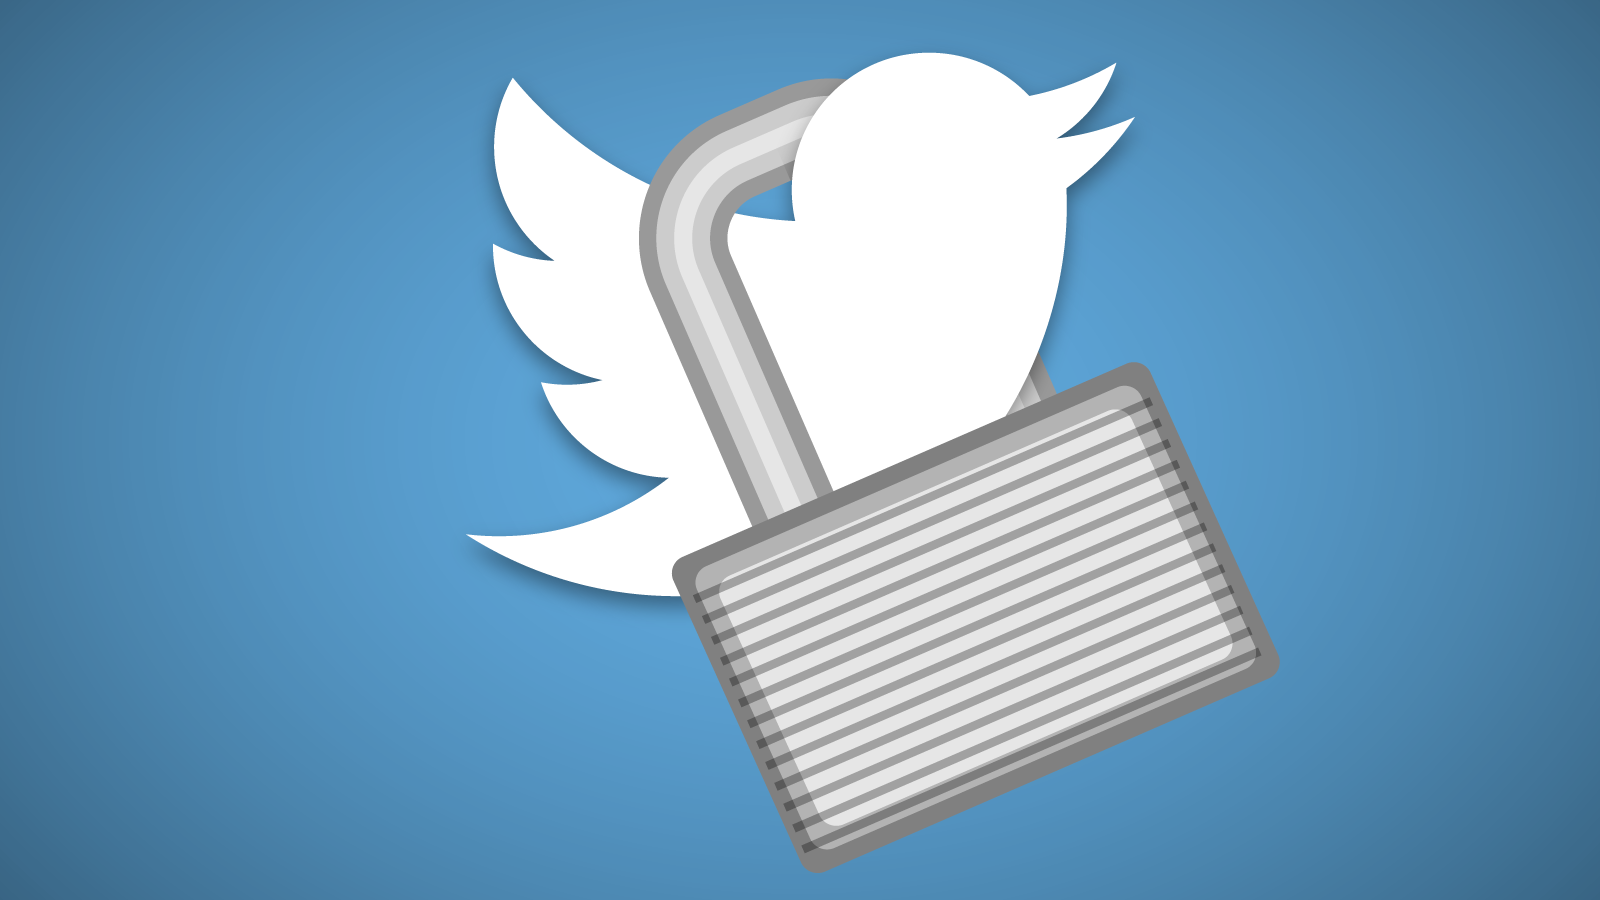 Twitter testing end-to-end encrypted messaging, say report